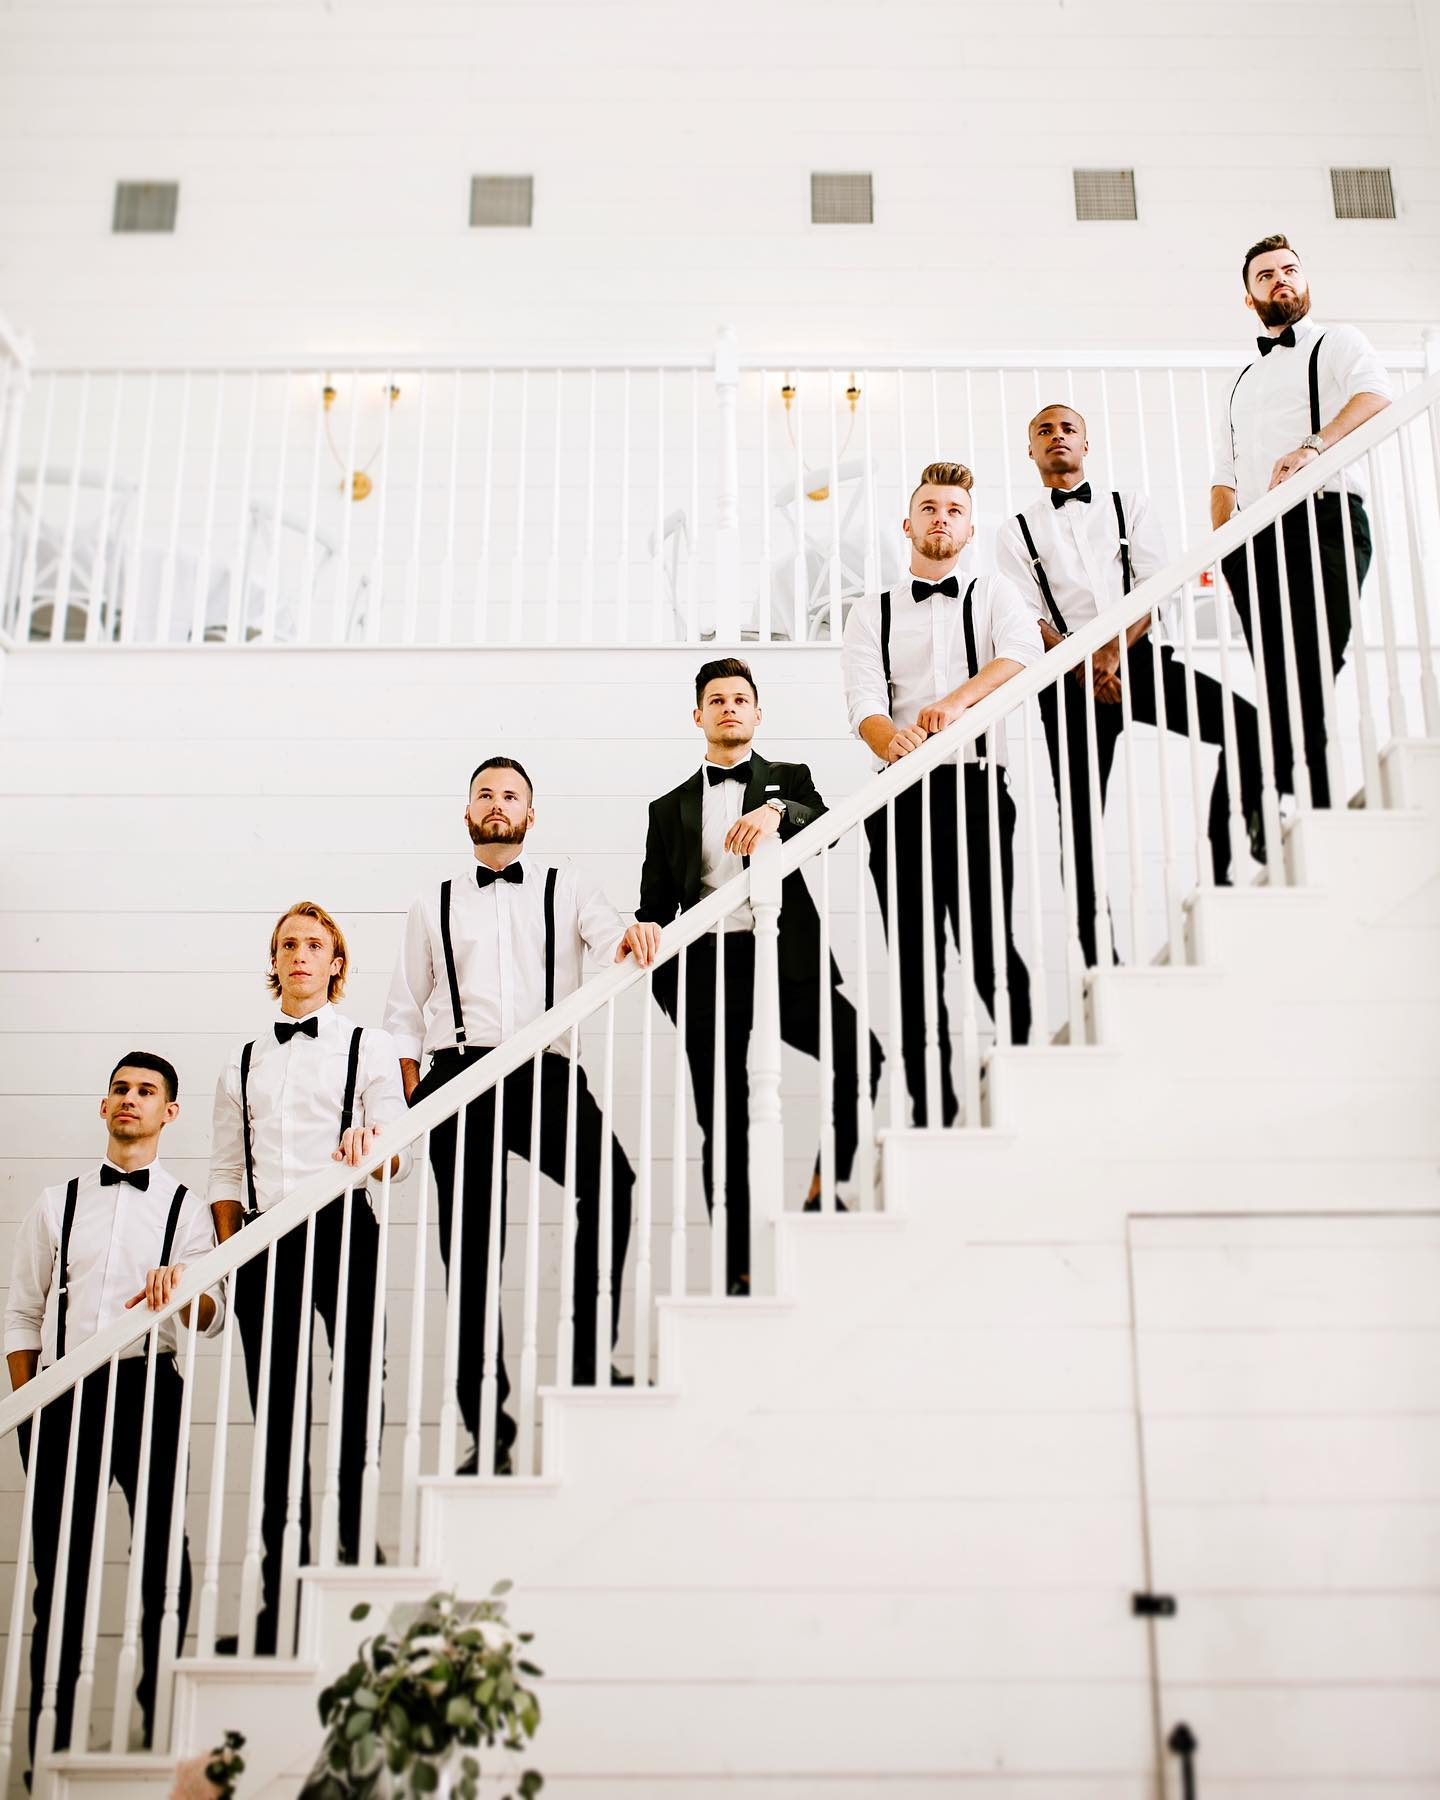 Groom and groomsmen pose while standing on a white-colored stairway